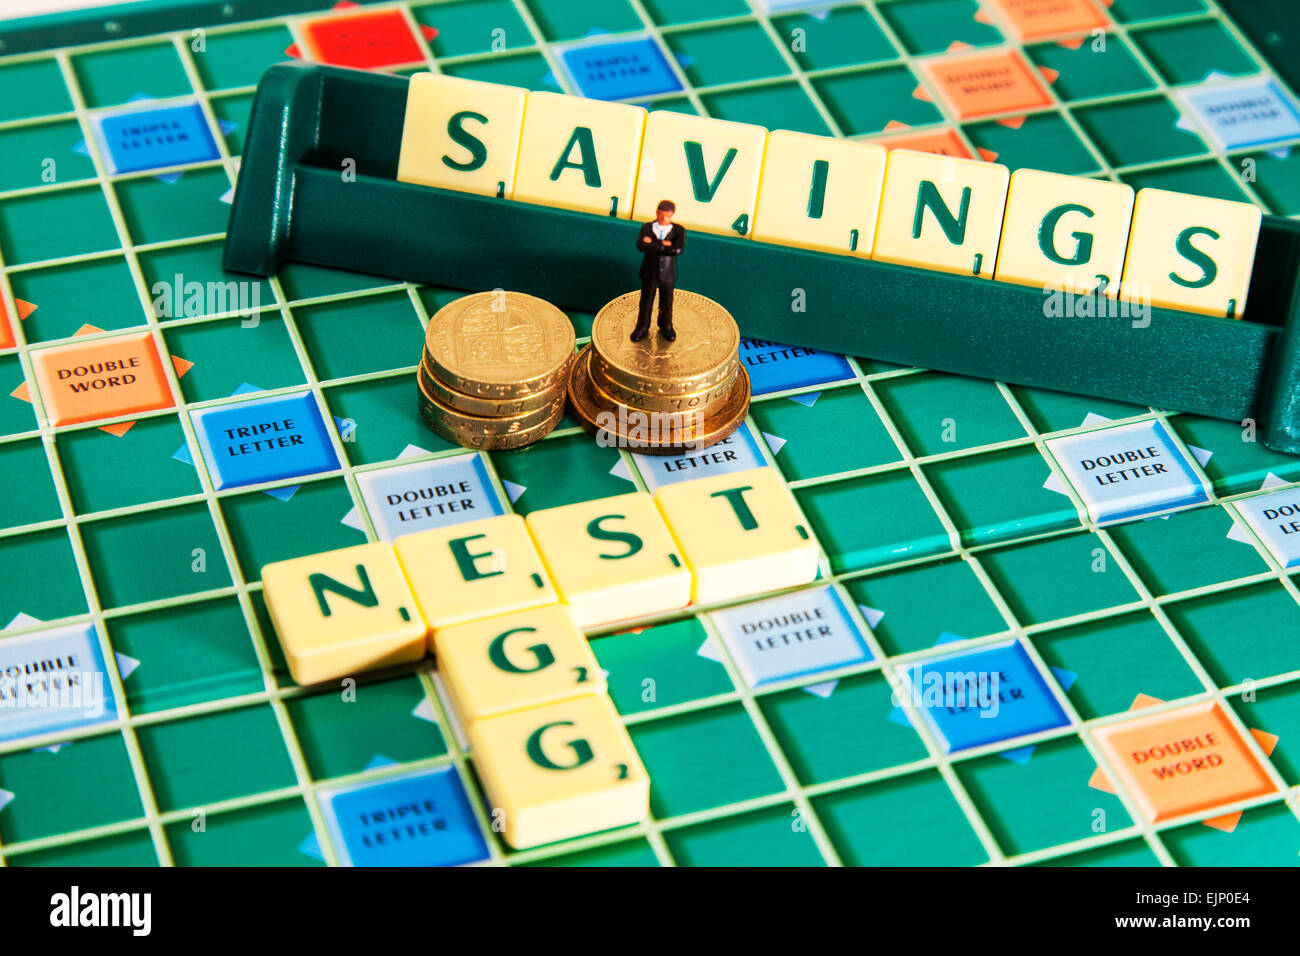 nest egg savings pension money save rainy day fund pensioner cash words using scrabble tiles to illustrate spelling - Stock Image